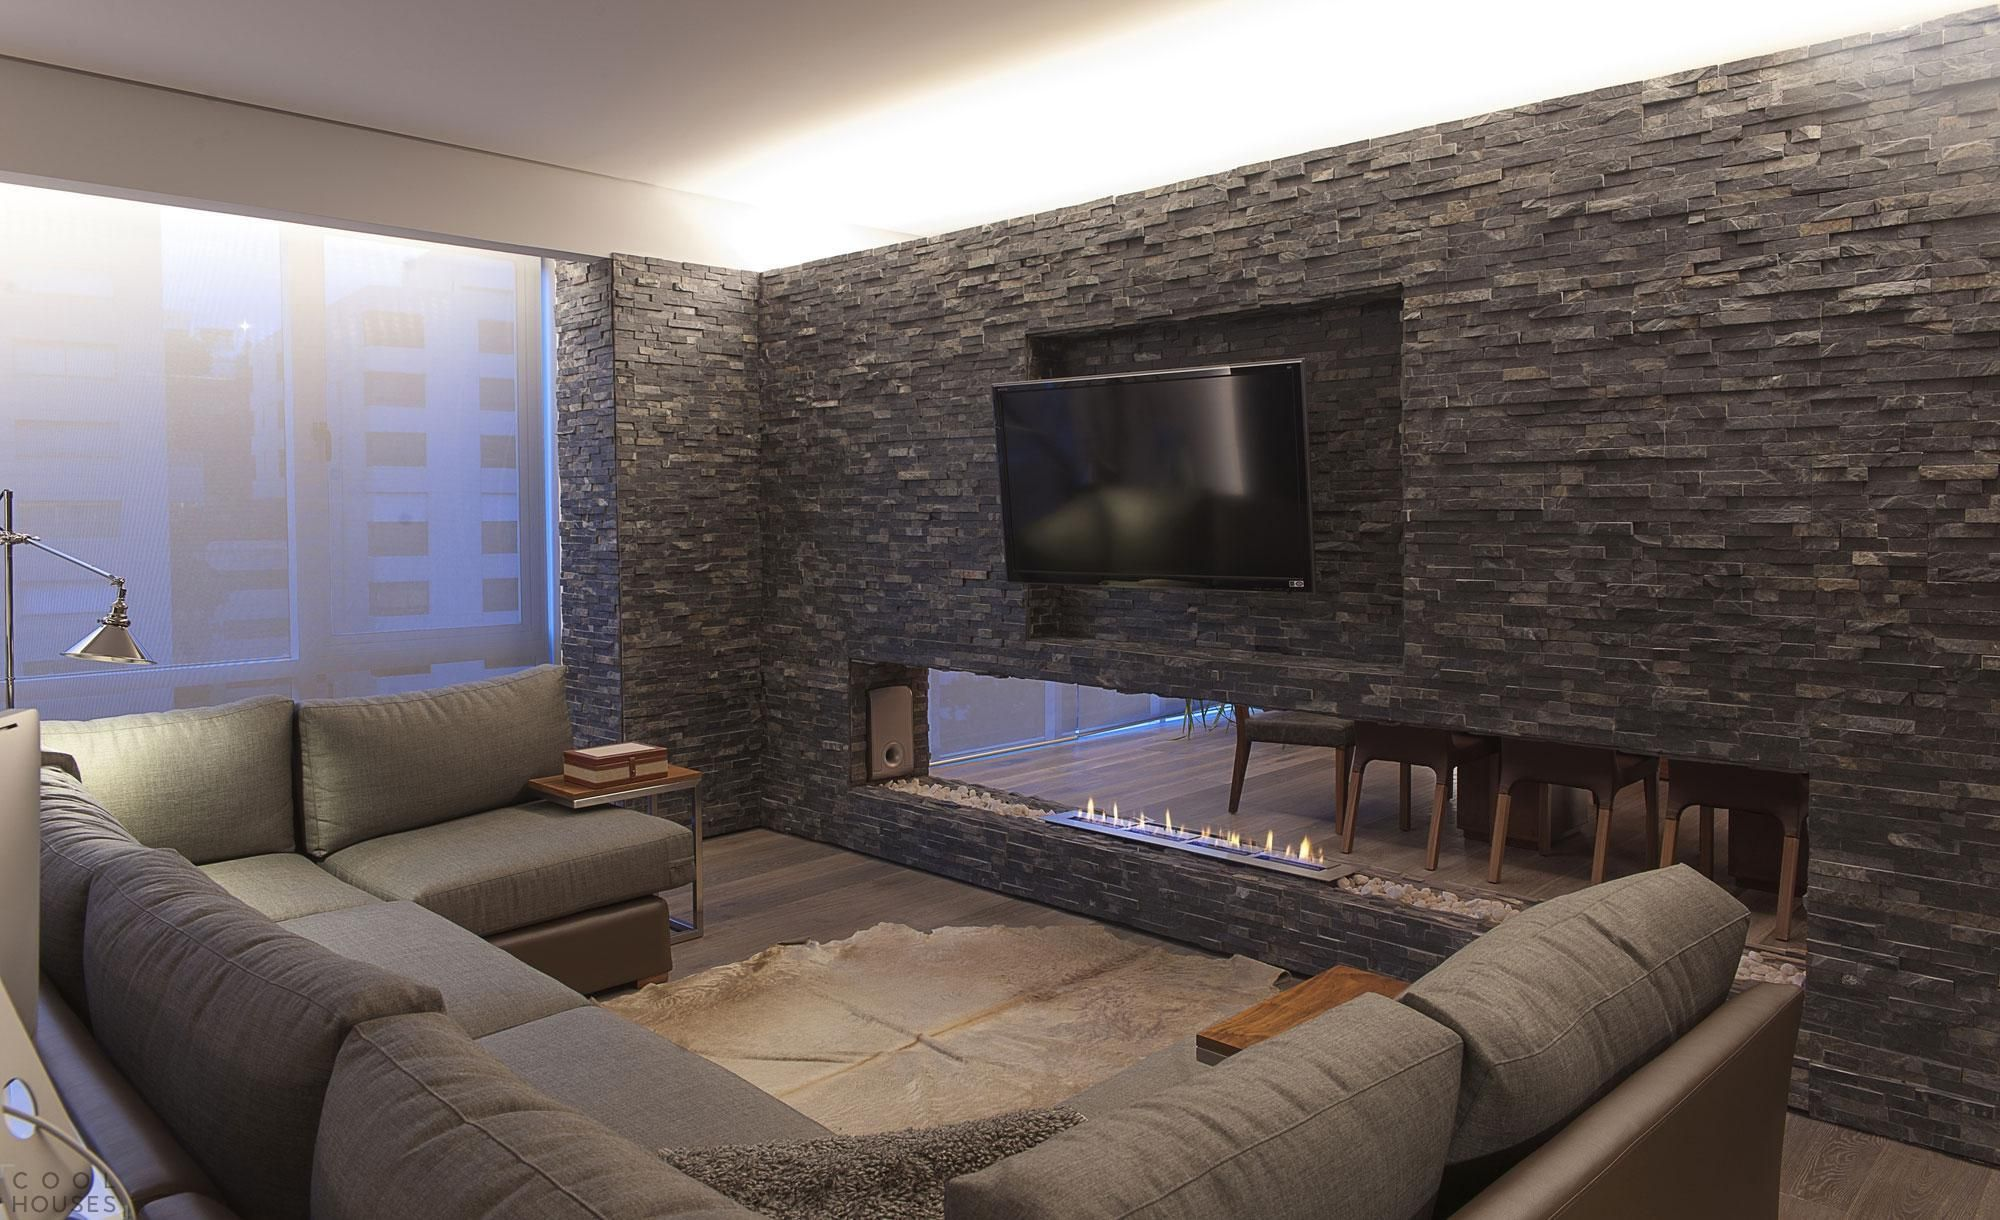 Awesome Design Of An Exposed Natural Stone Wall Panel With